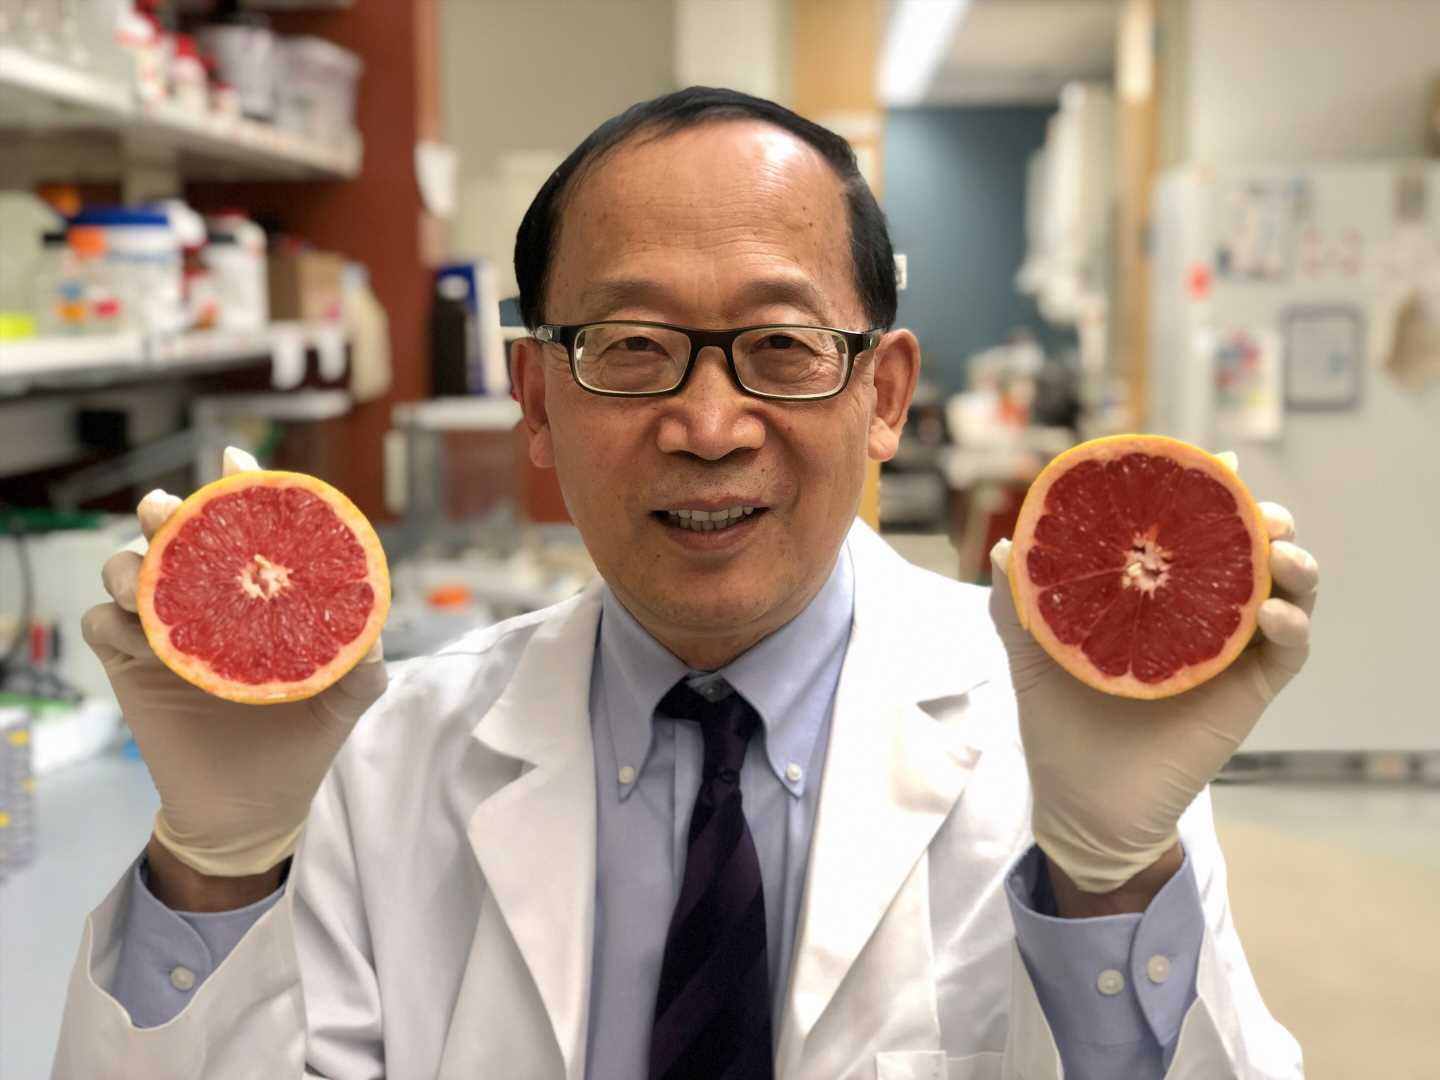 Researcher uses fruit for less toxic drug delivery